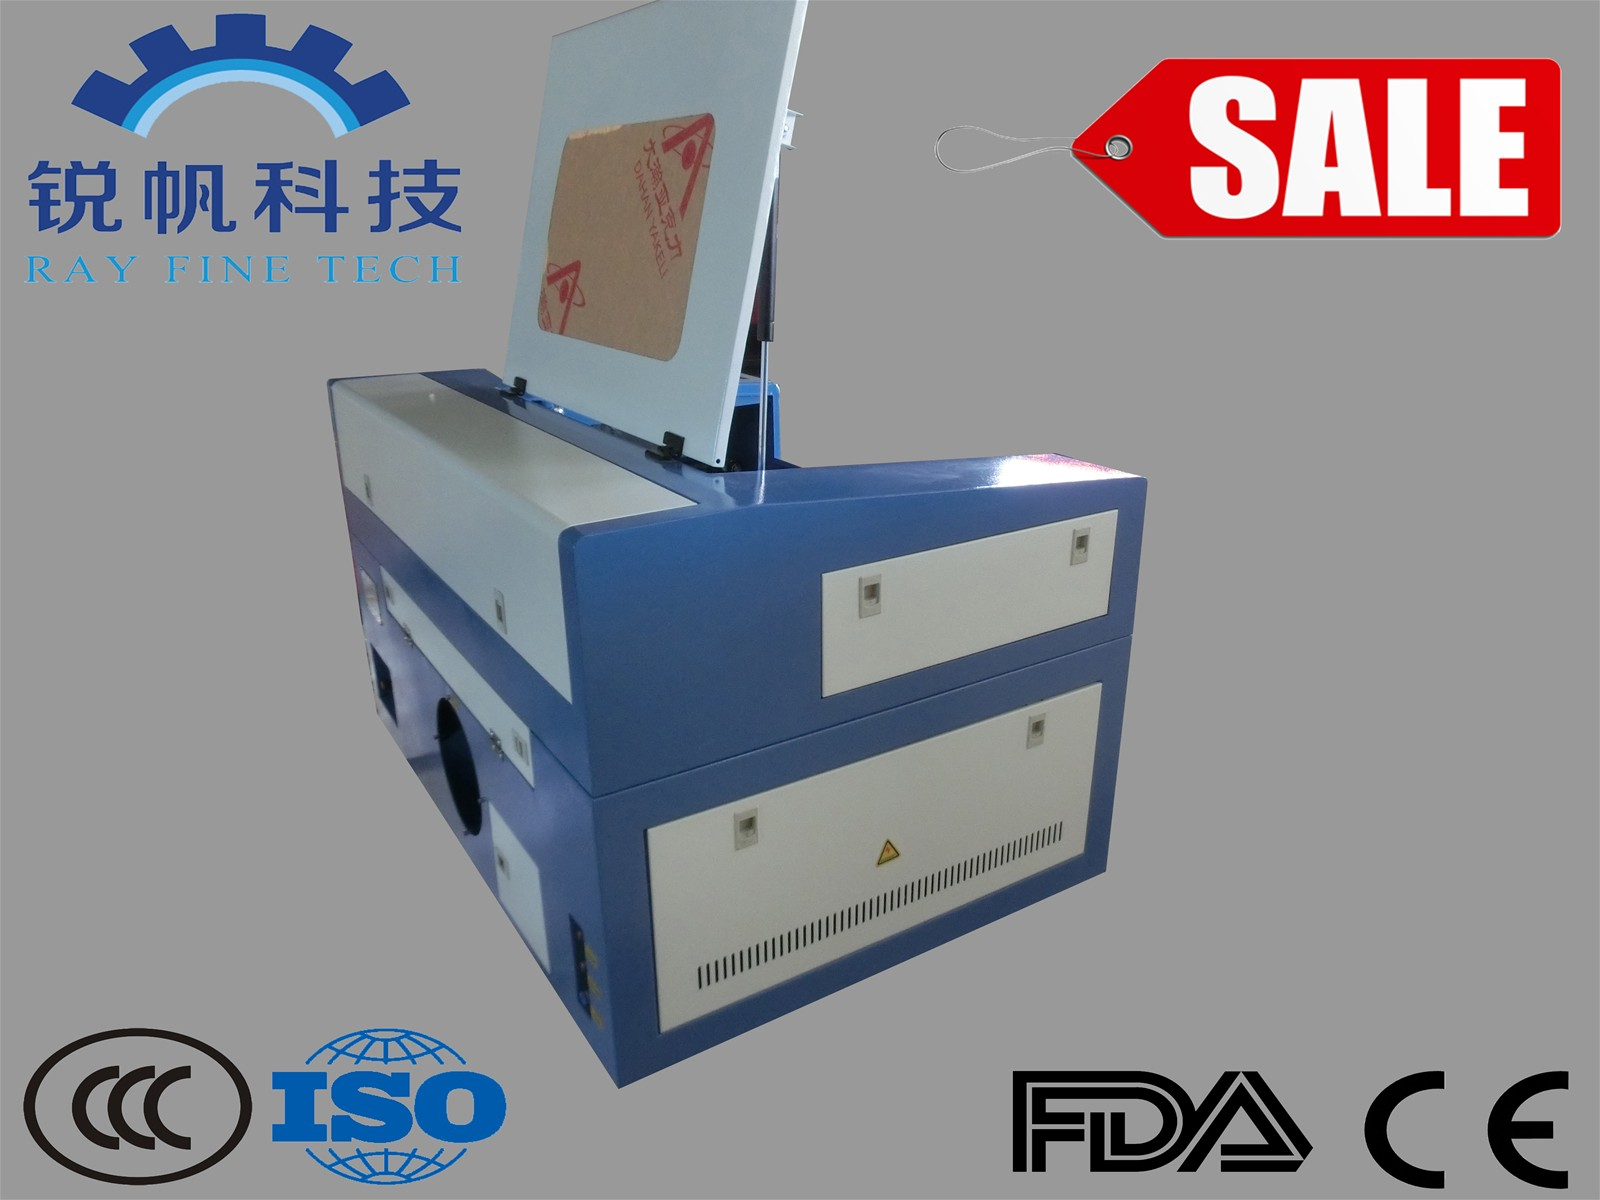 50w Co2 Laser Engraving and Cutting Machine Rf-5030-Co2-50w with up and Down Shifting Table